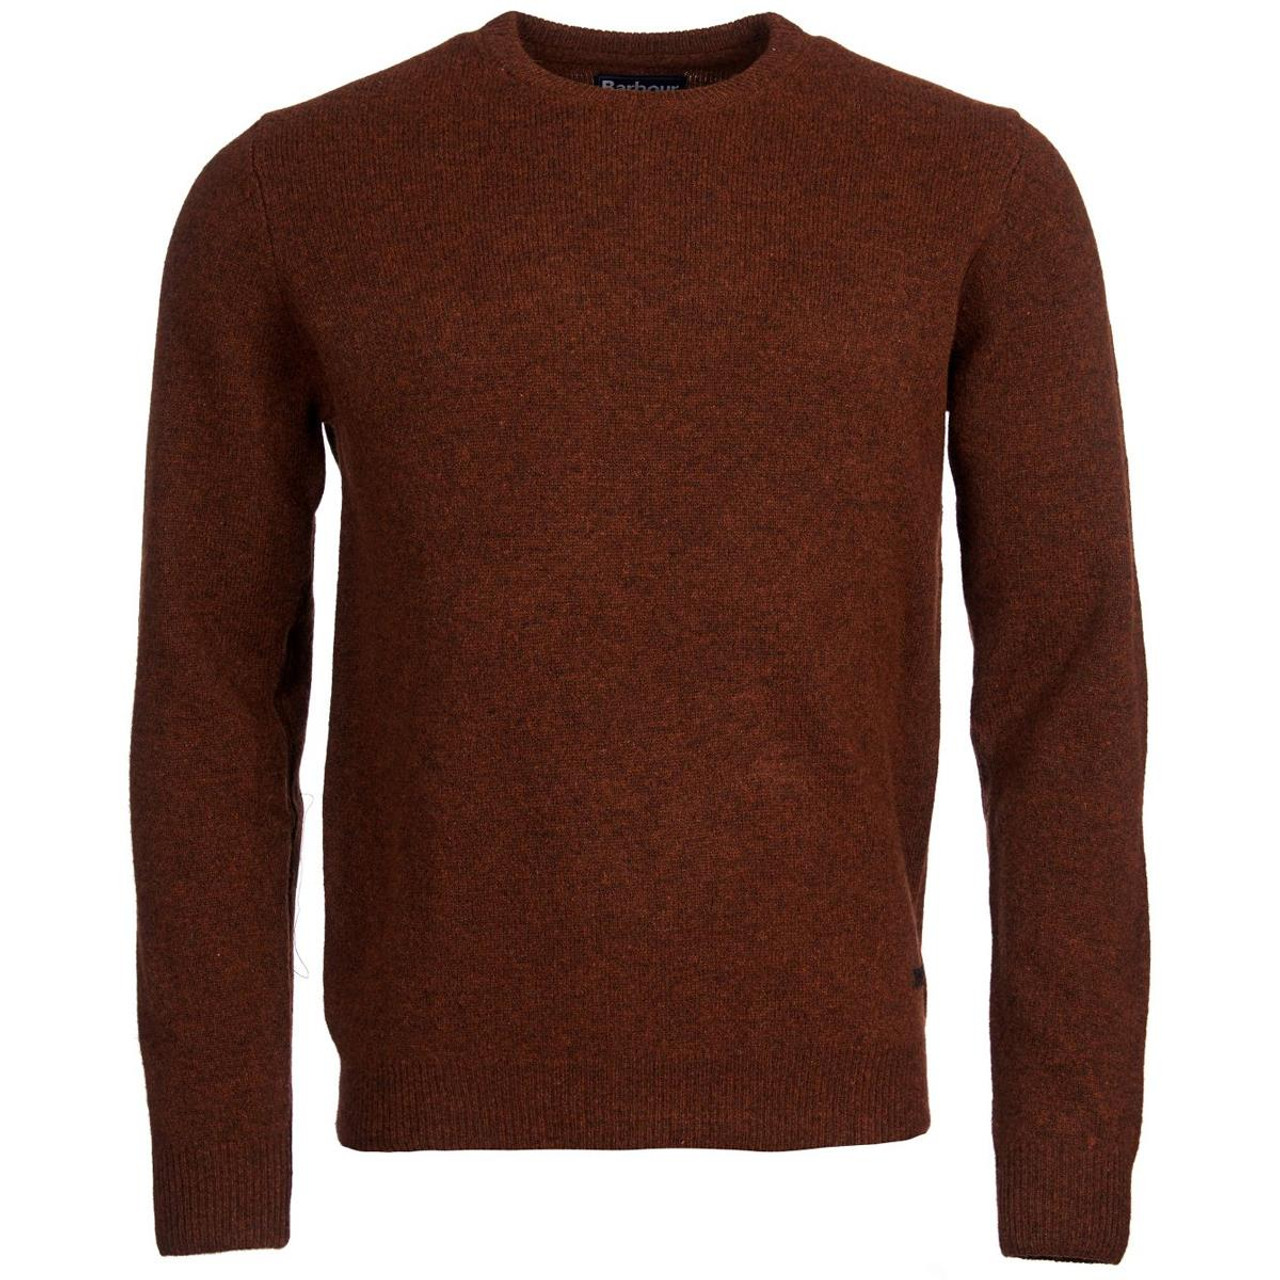 Barbour Patch Crew Neck Sweater